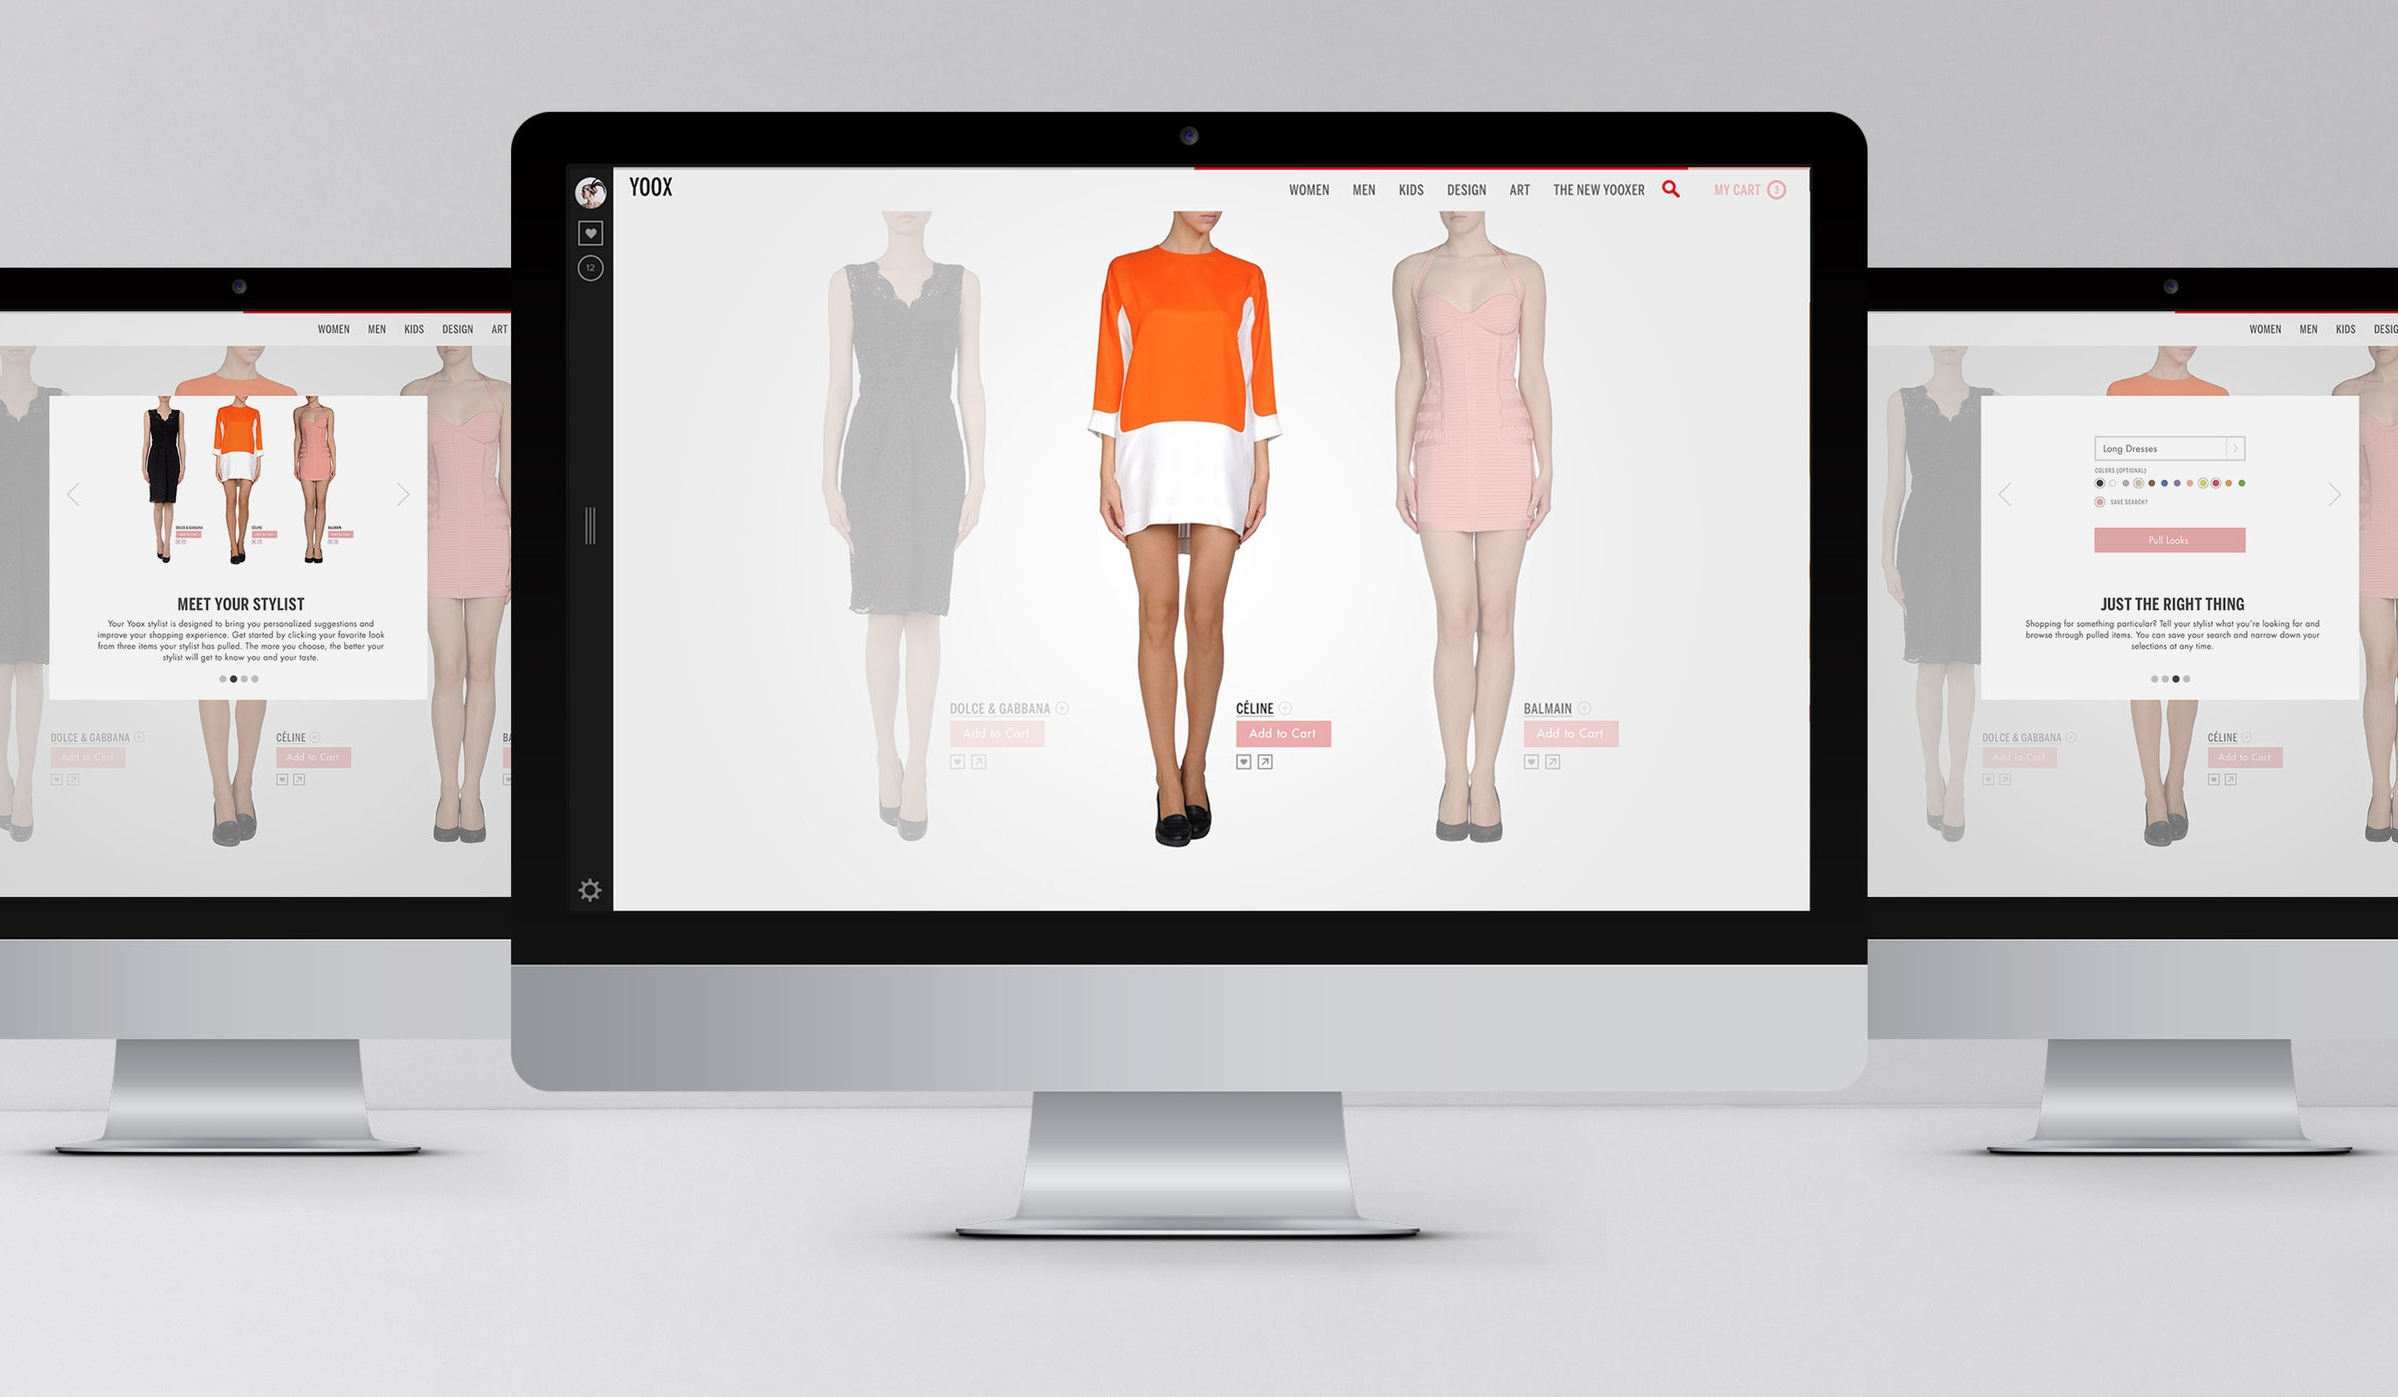 Yoox.comPersonal Shopping - Sideways created concepts for Yoox's US online store. An exercise in emotion-centric ecommerce, the Yoox concept focuses on presenting shoppers with limited options in order to hone personal preferences.creative, application design, Concept